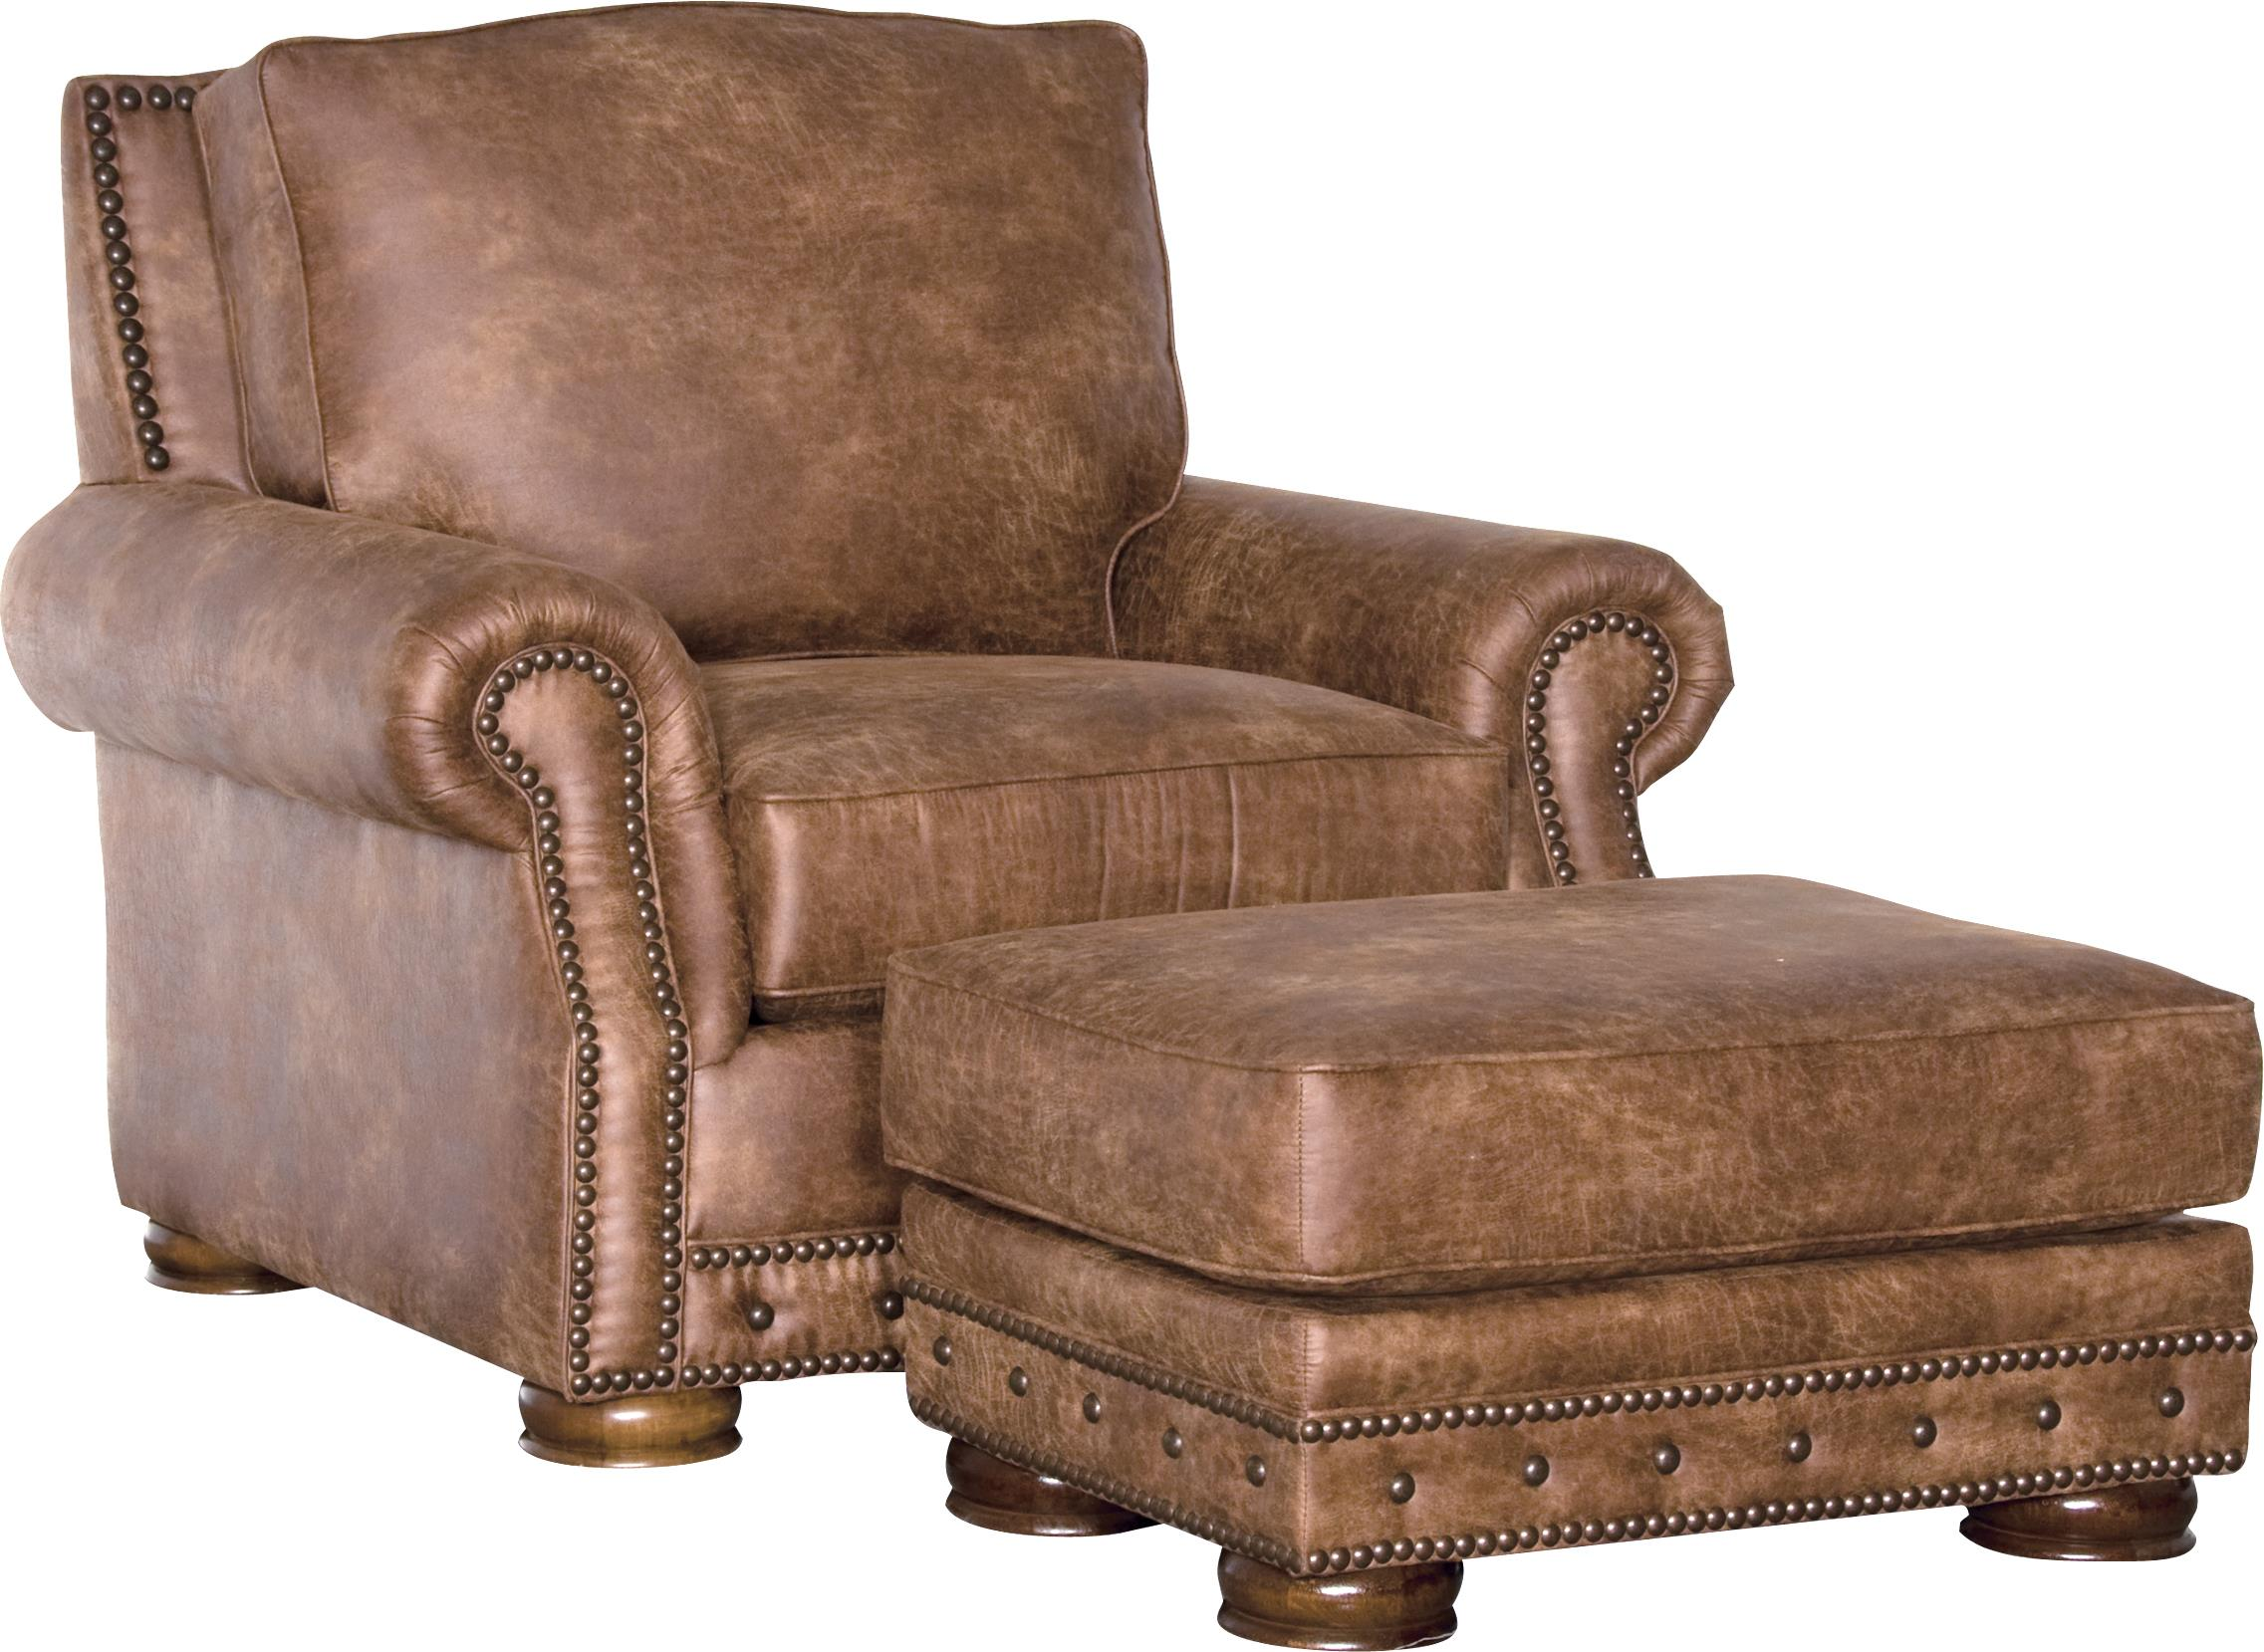 2900 Chair & Ottoman by Mayo at Wilcox Furniture